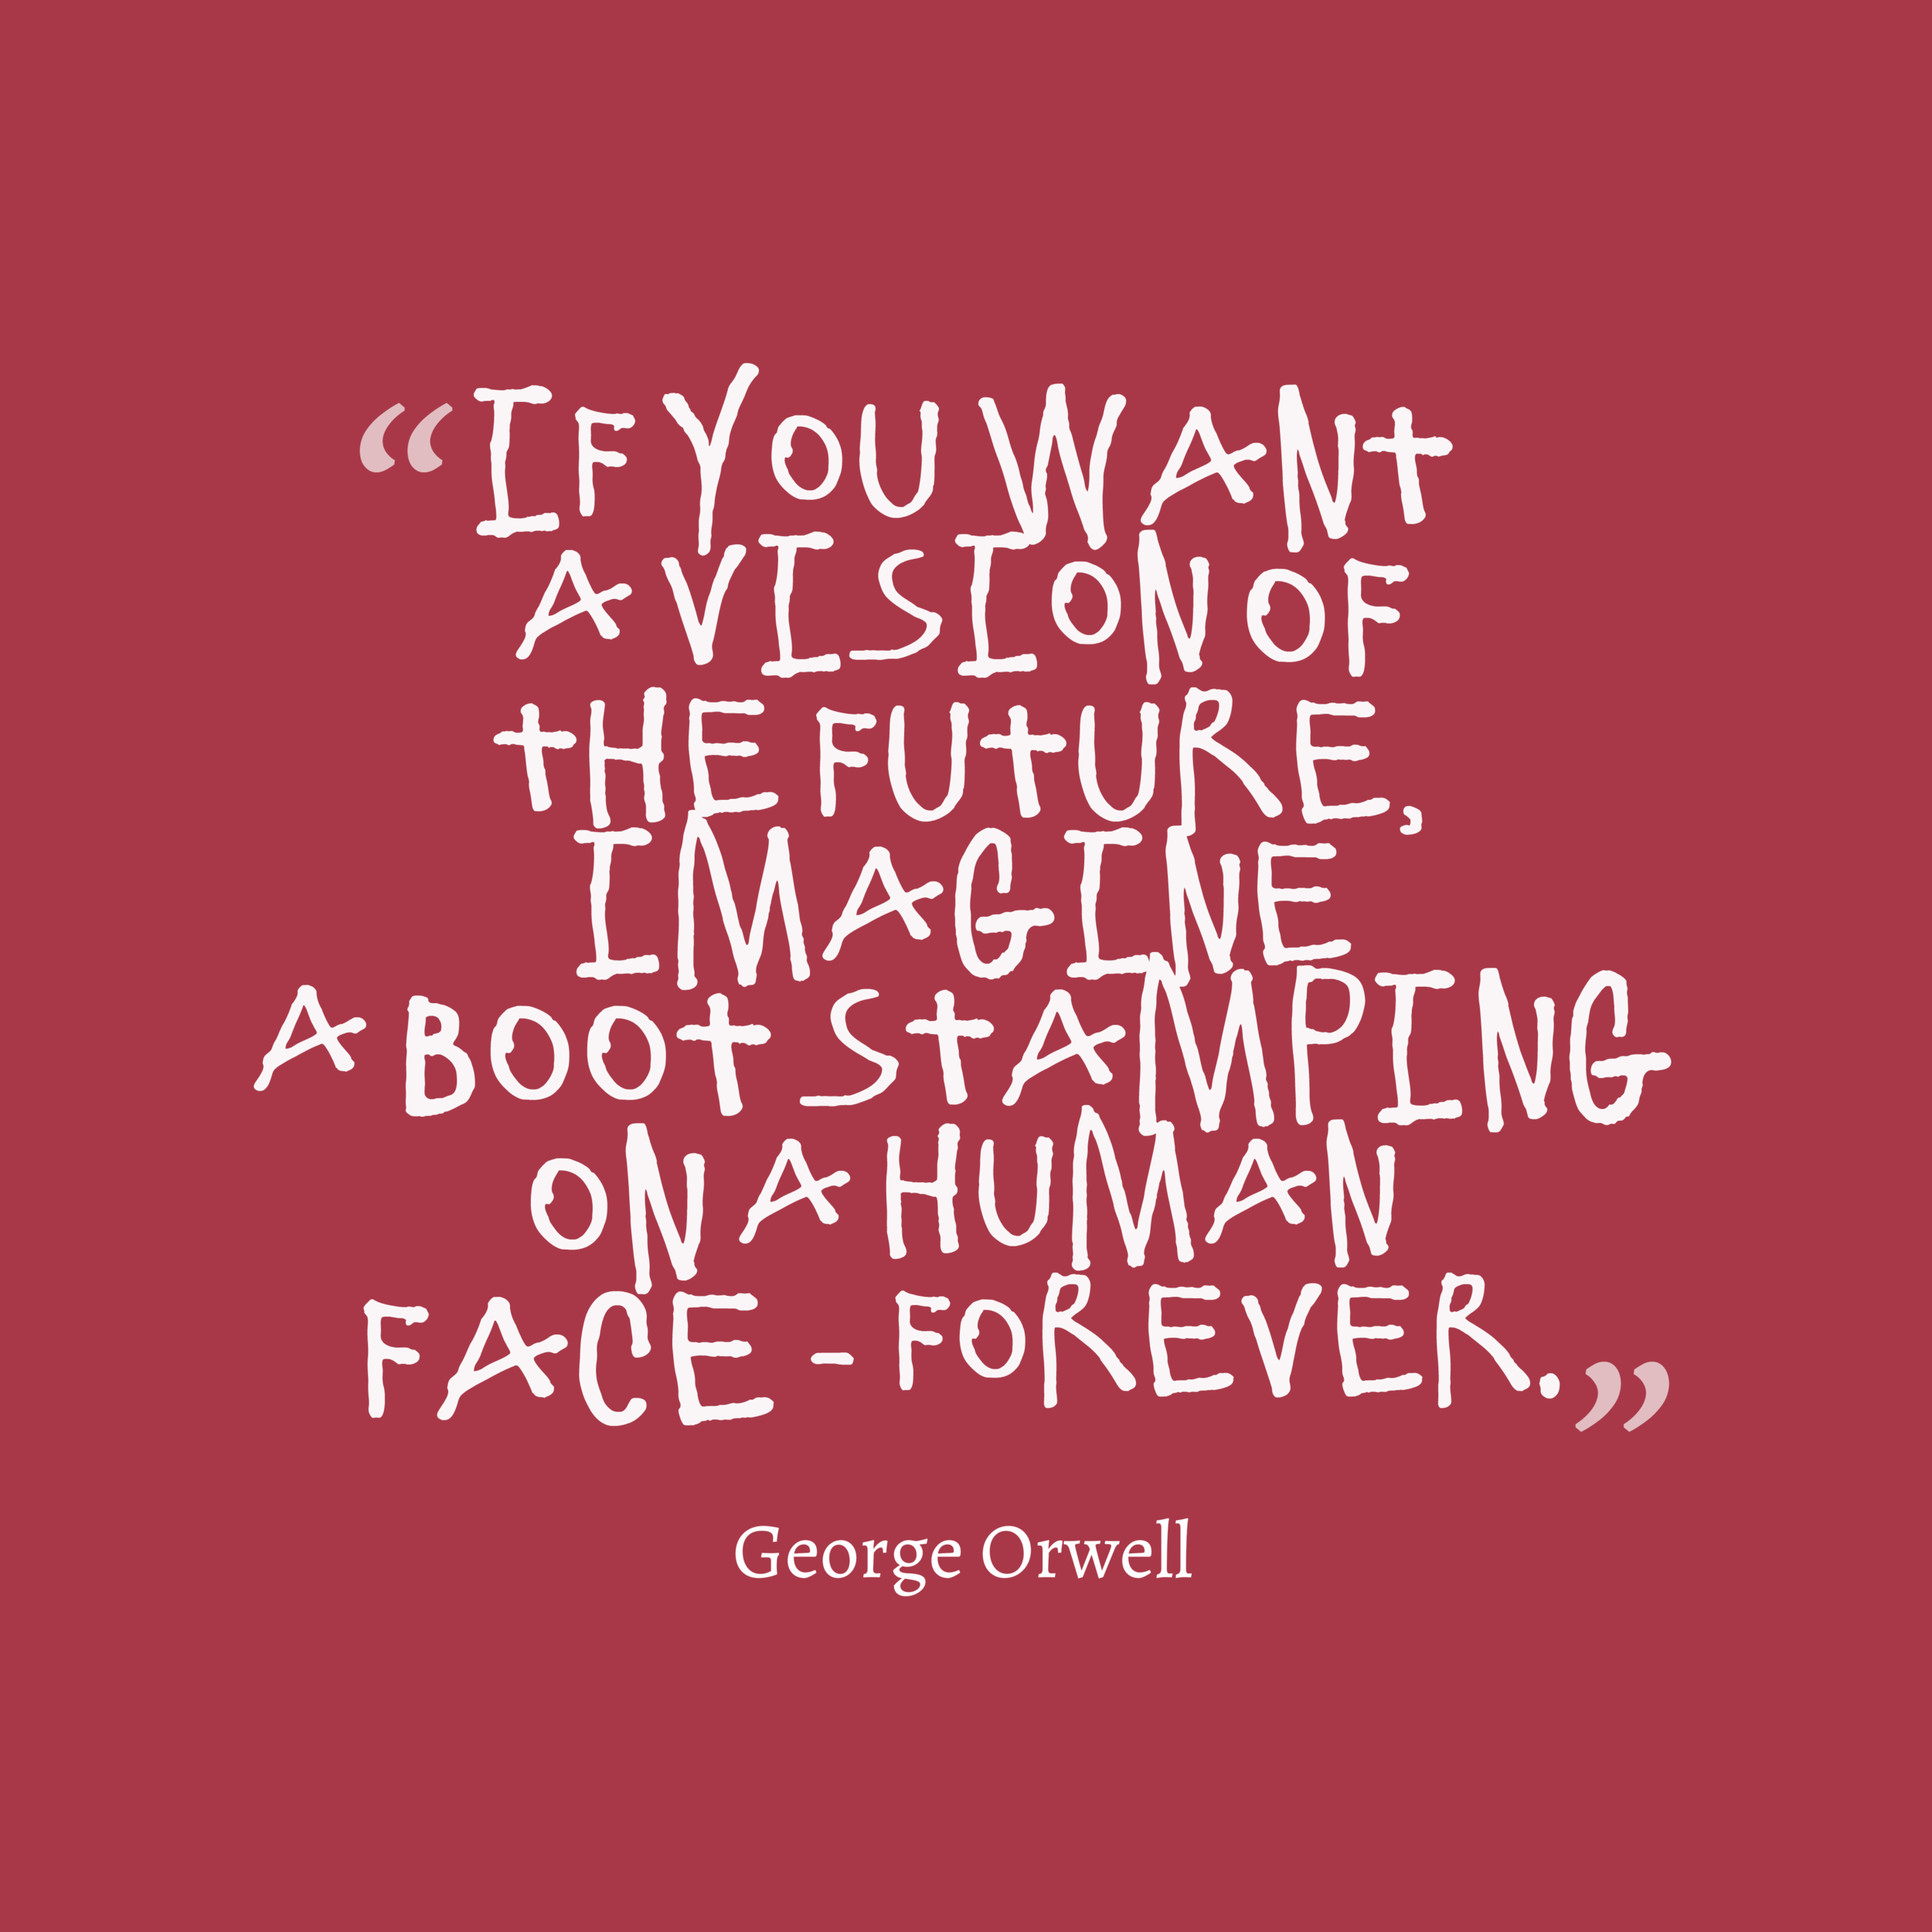 If-you-want-a-vision__quotes-by-George-Orwell-62.png